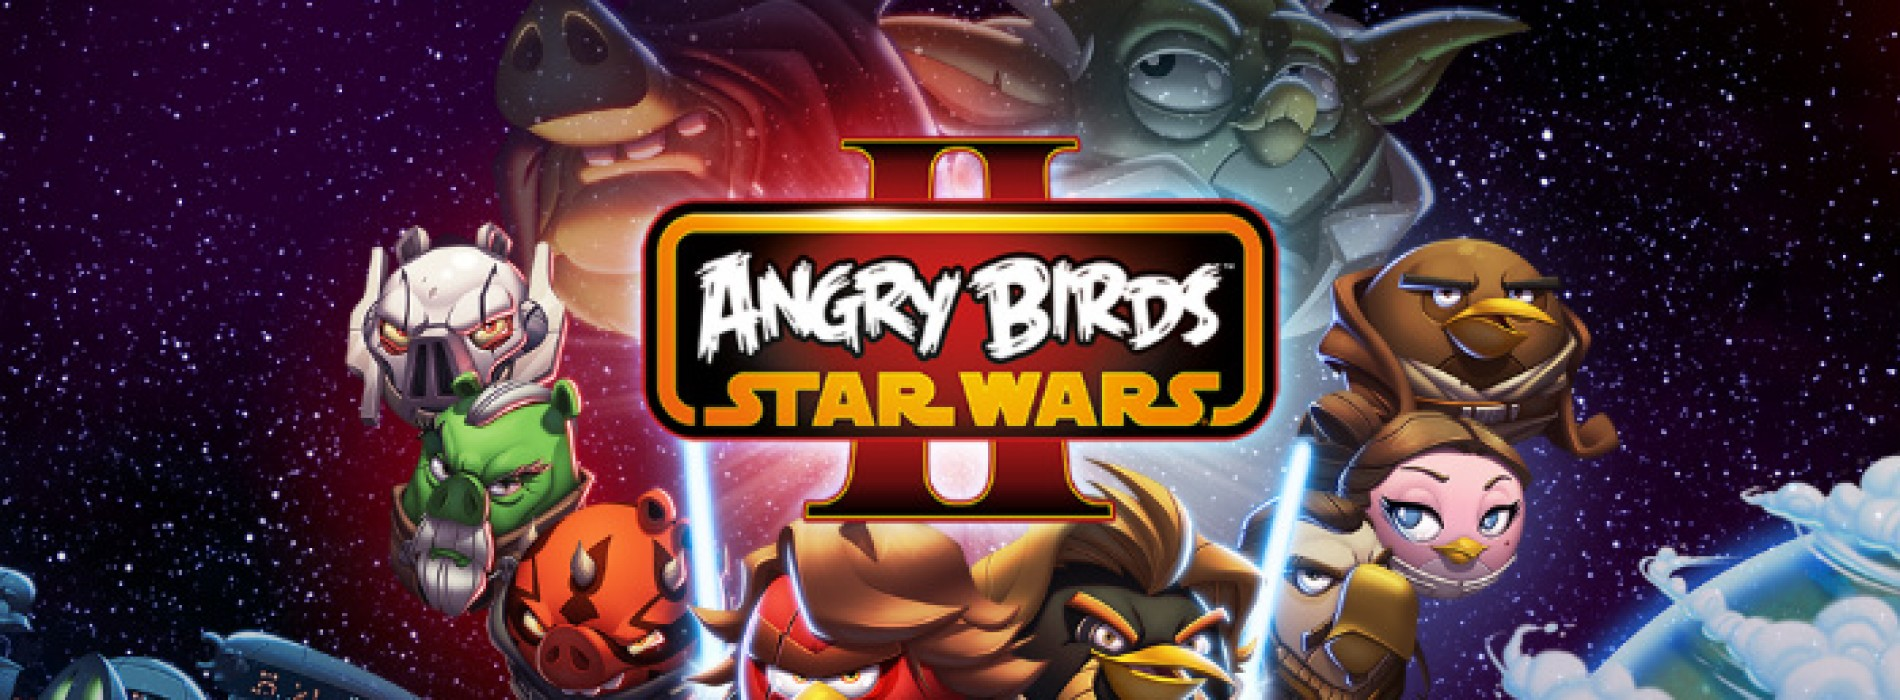 Angry Birds Star Wars 2 arrives on Android